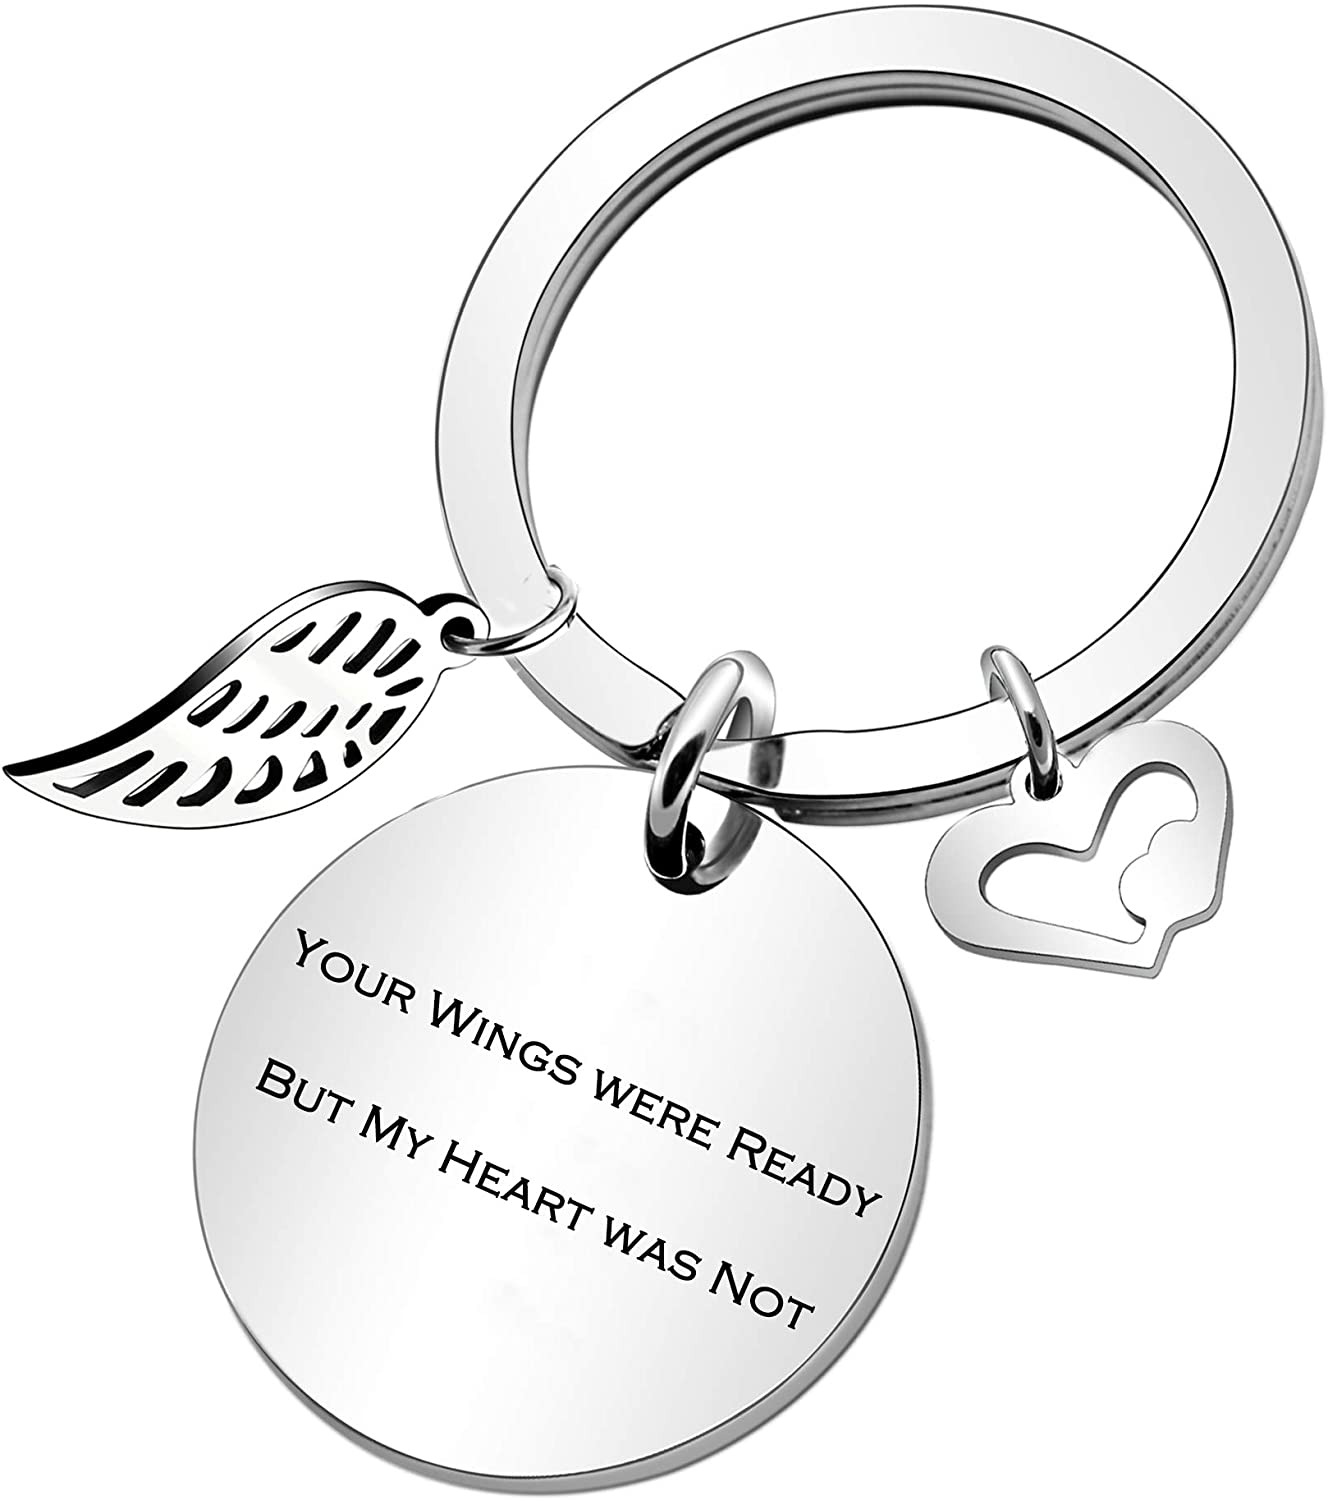 Remembrance Key Ring Your Wings were Ready But My Heart was Not Loved One Memorial Keyring Memorial Keyring Loss of A Loved One Memorial Key Chain Sympathy Gift